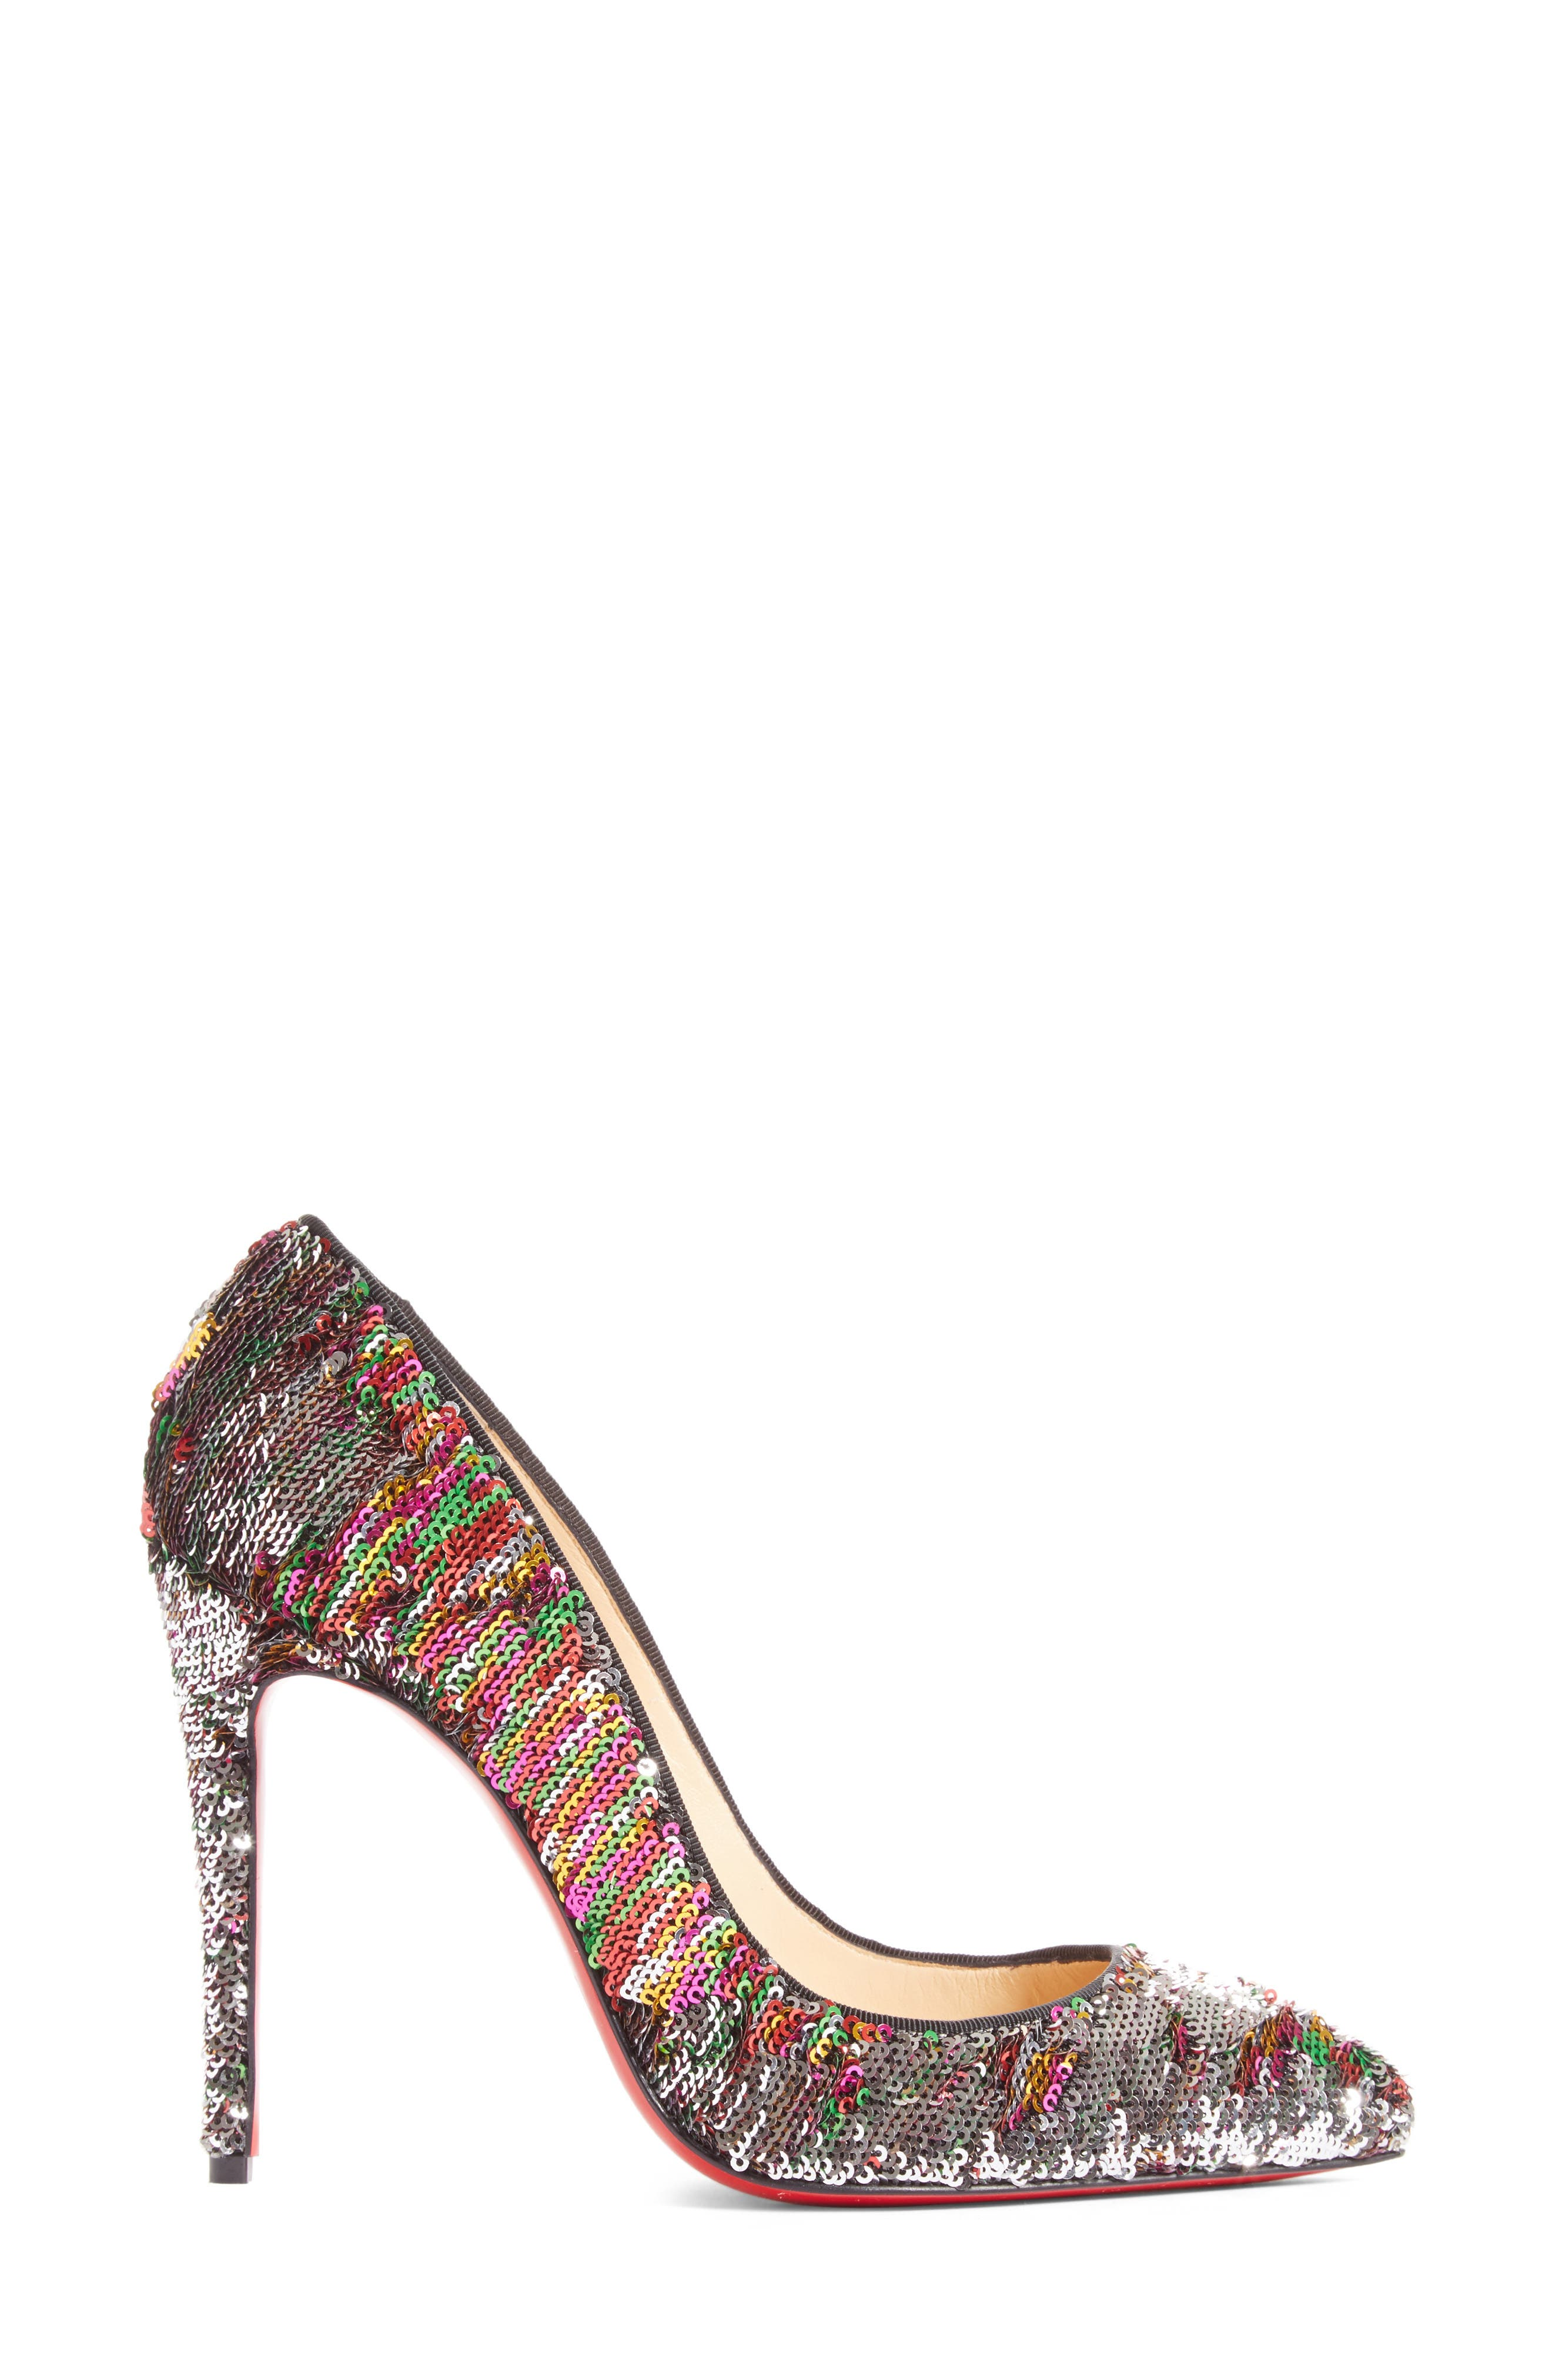 Pigalle Follies Sequin Pointy Toe Pump,                             Alternate thumbnail 4, color,                             Silver Sequin